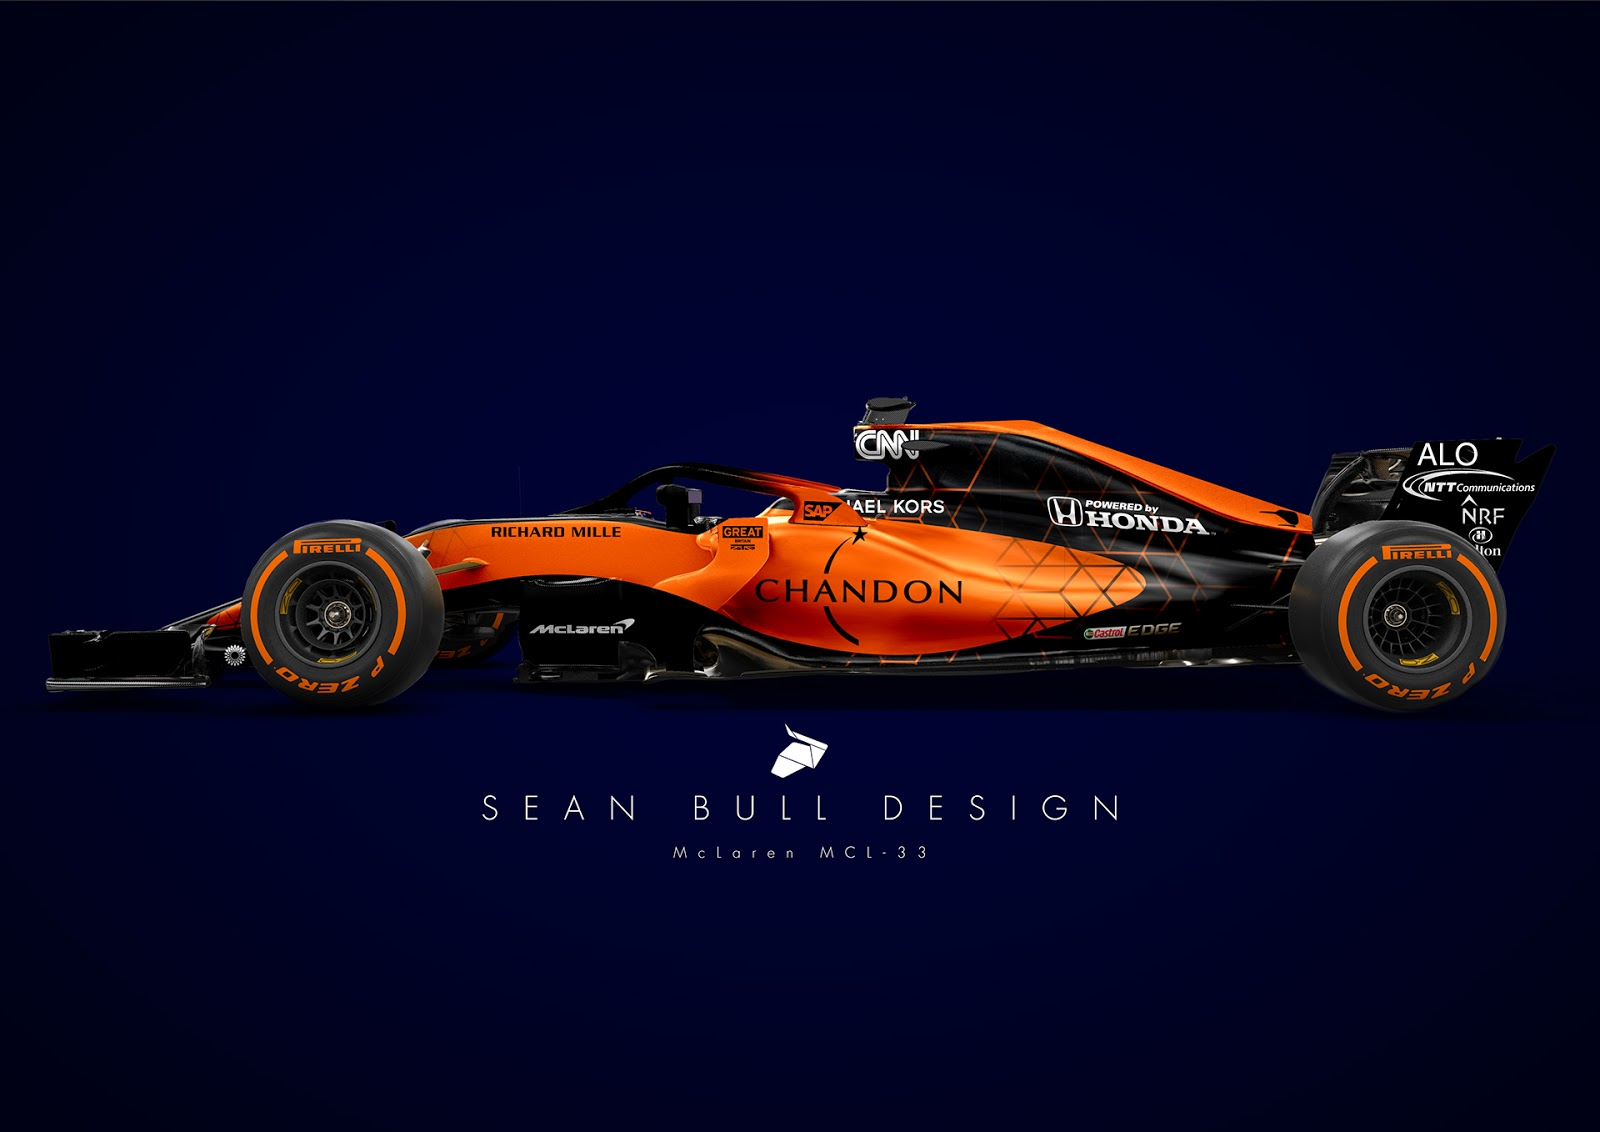 2018-F1-Car-Halo-Liveries-5